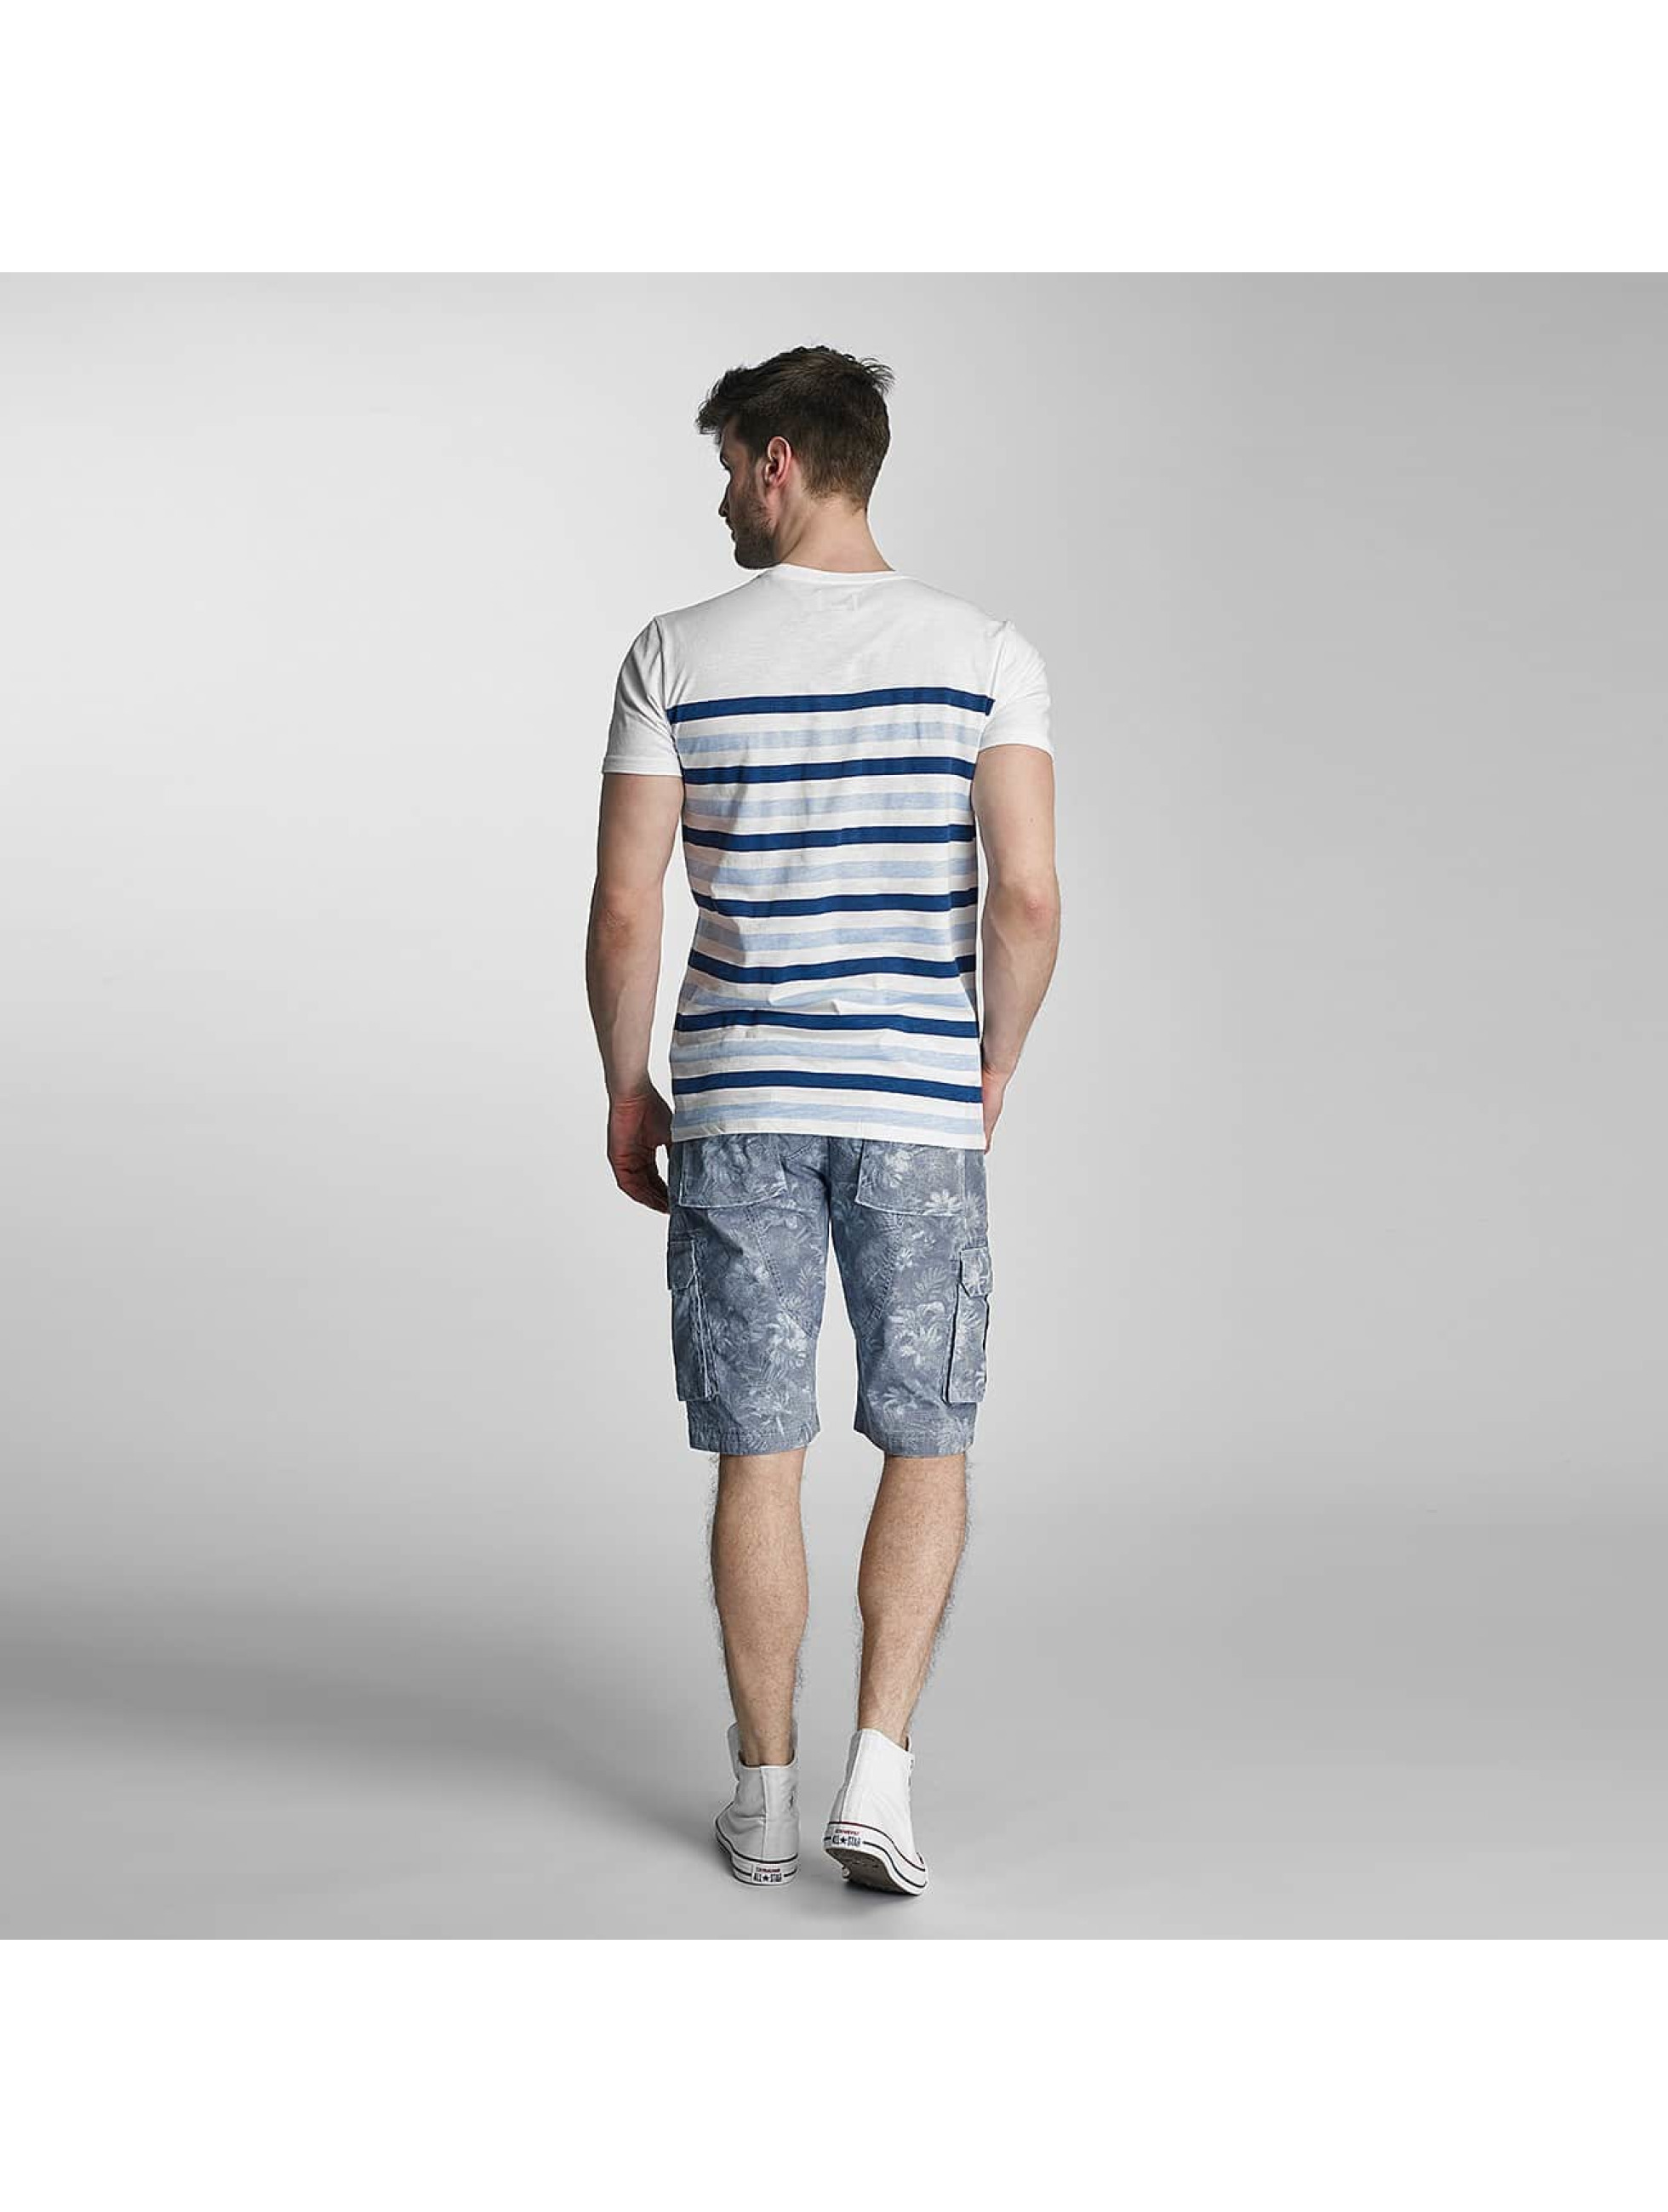 SHINE Original T-Shirt Striped bleu